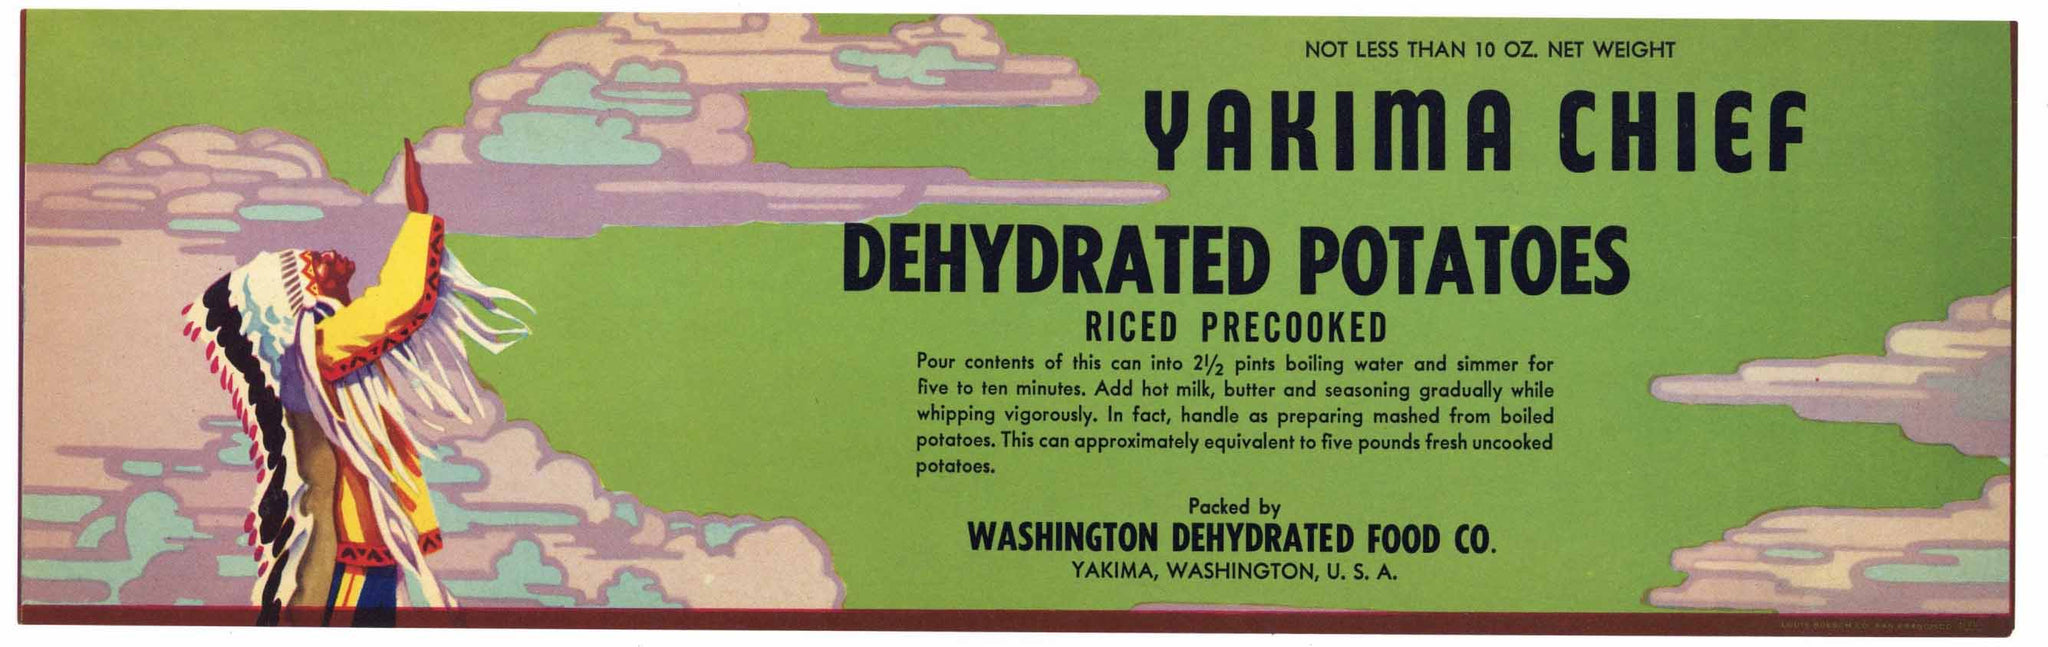 Yakima Chief Brand Vintage Washington Potato Can Label